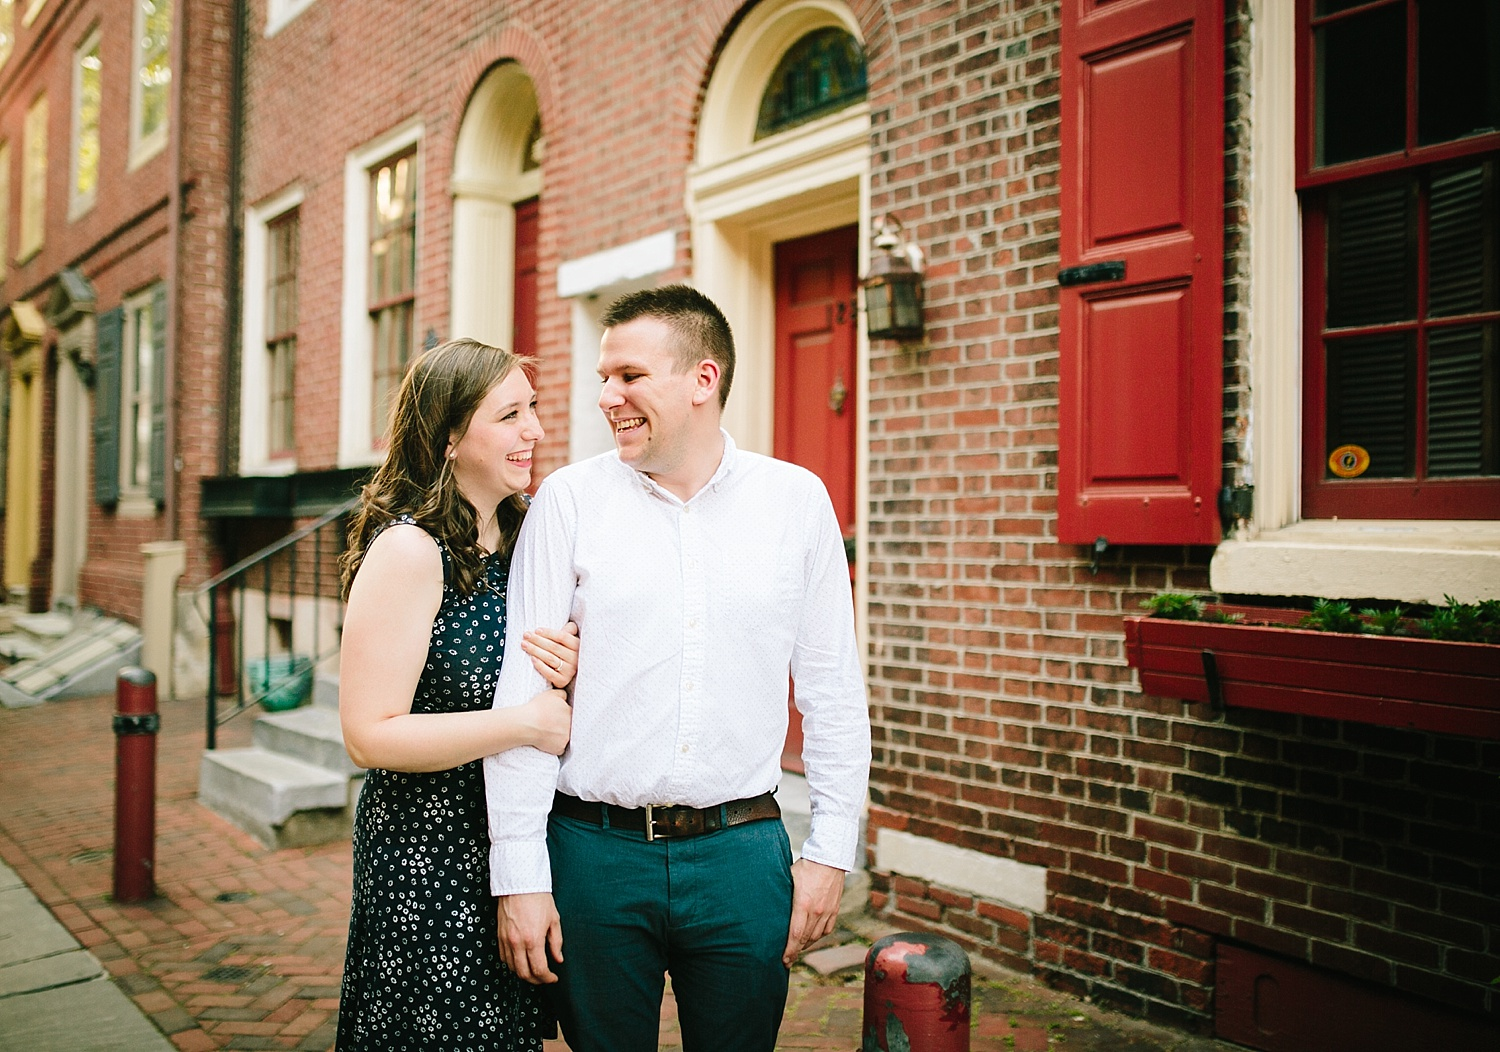 lizandbrandon_oldcity_philadelphia_elfrethsalley_engagement_session_image003.jpg